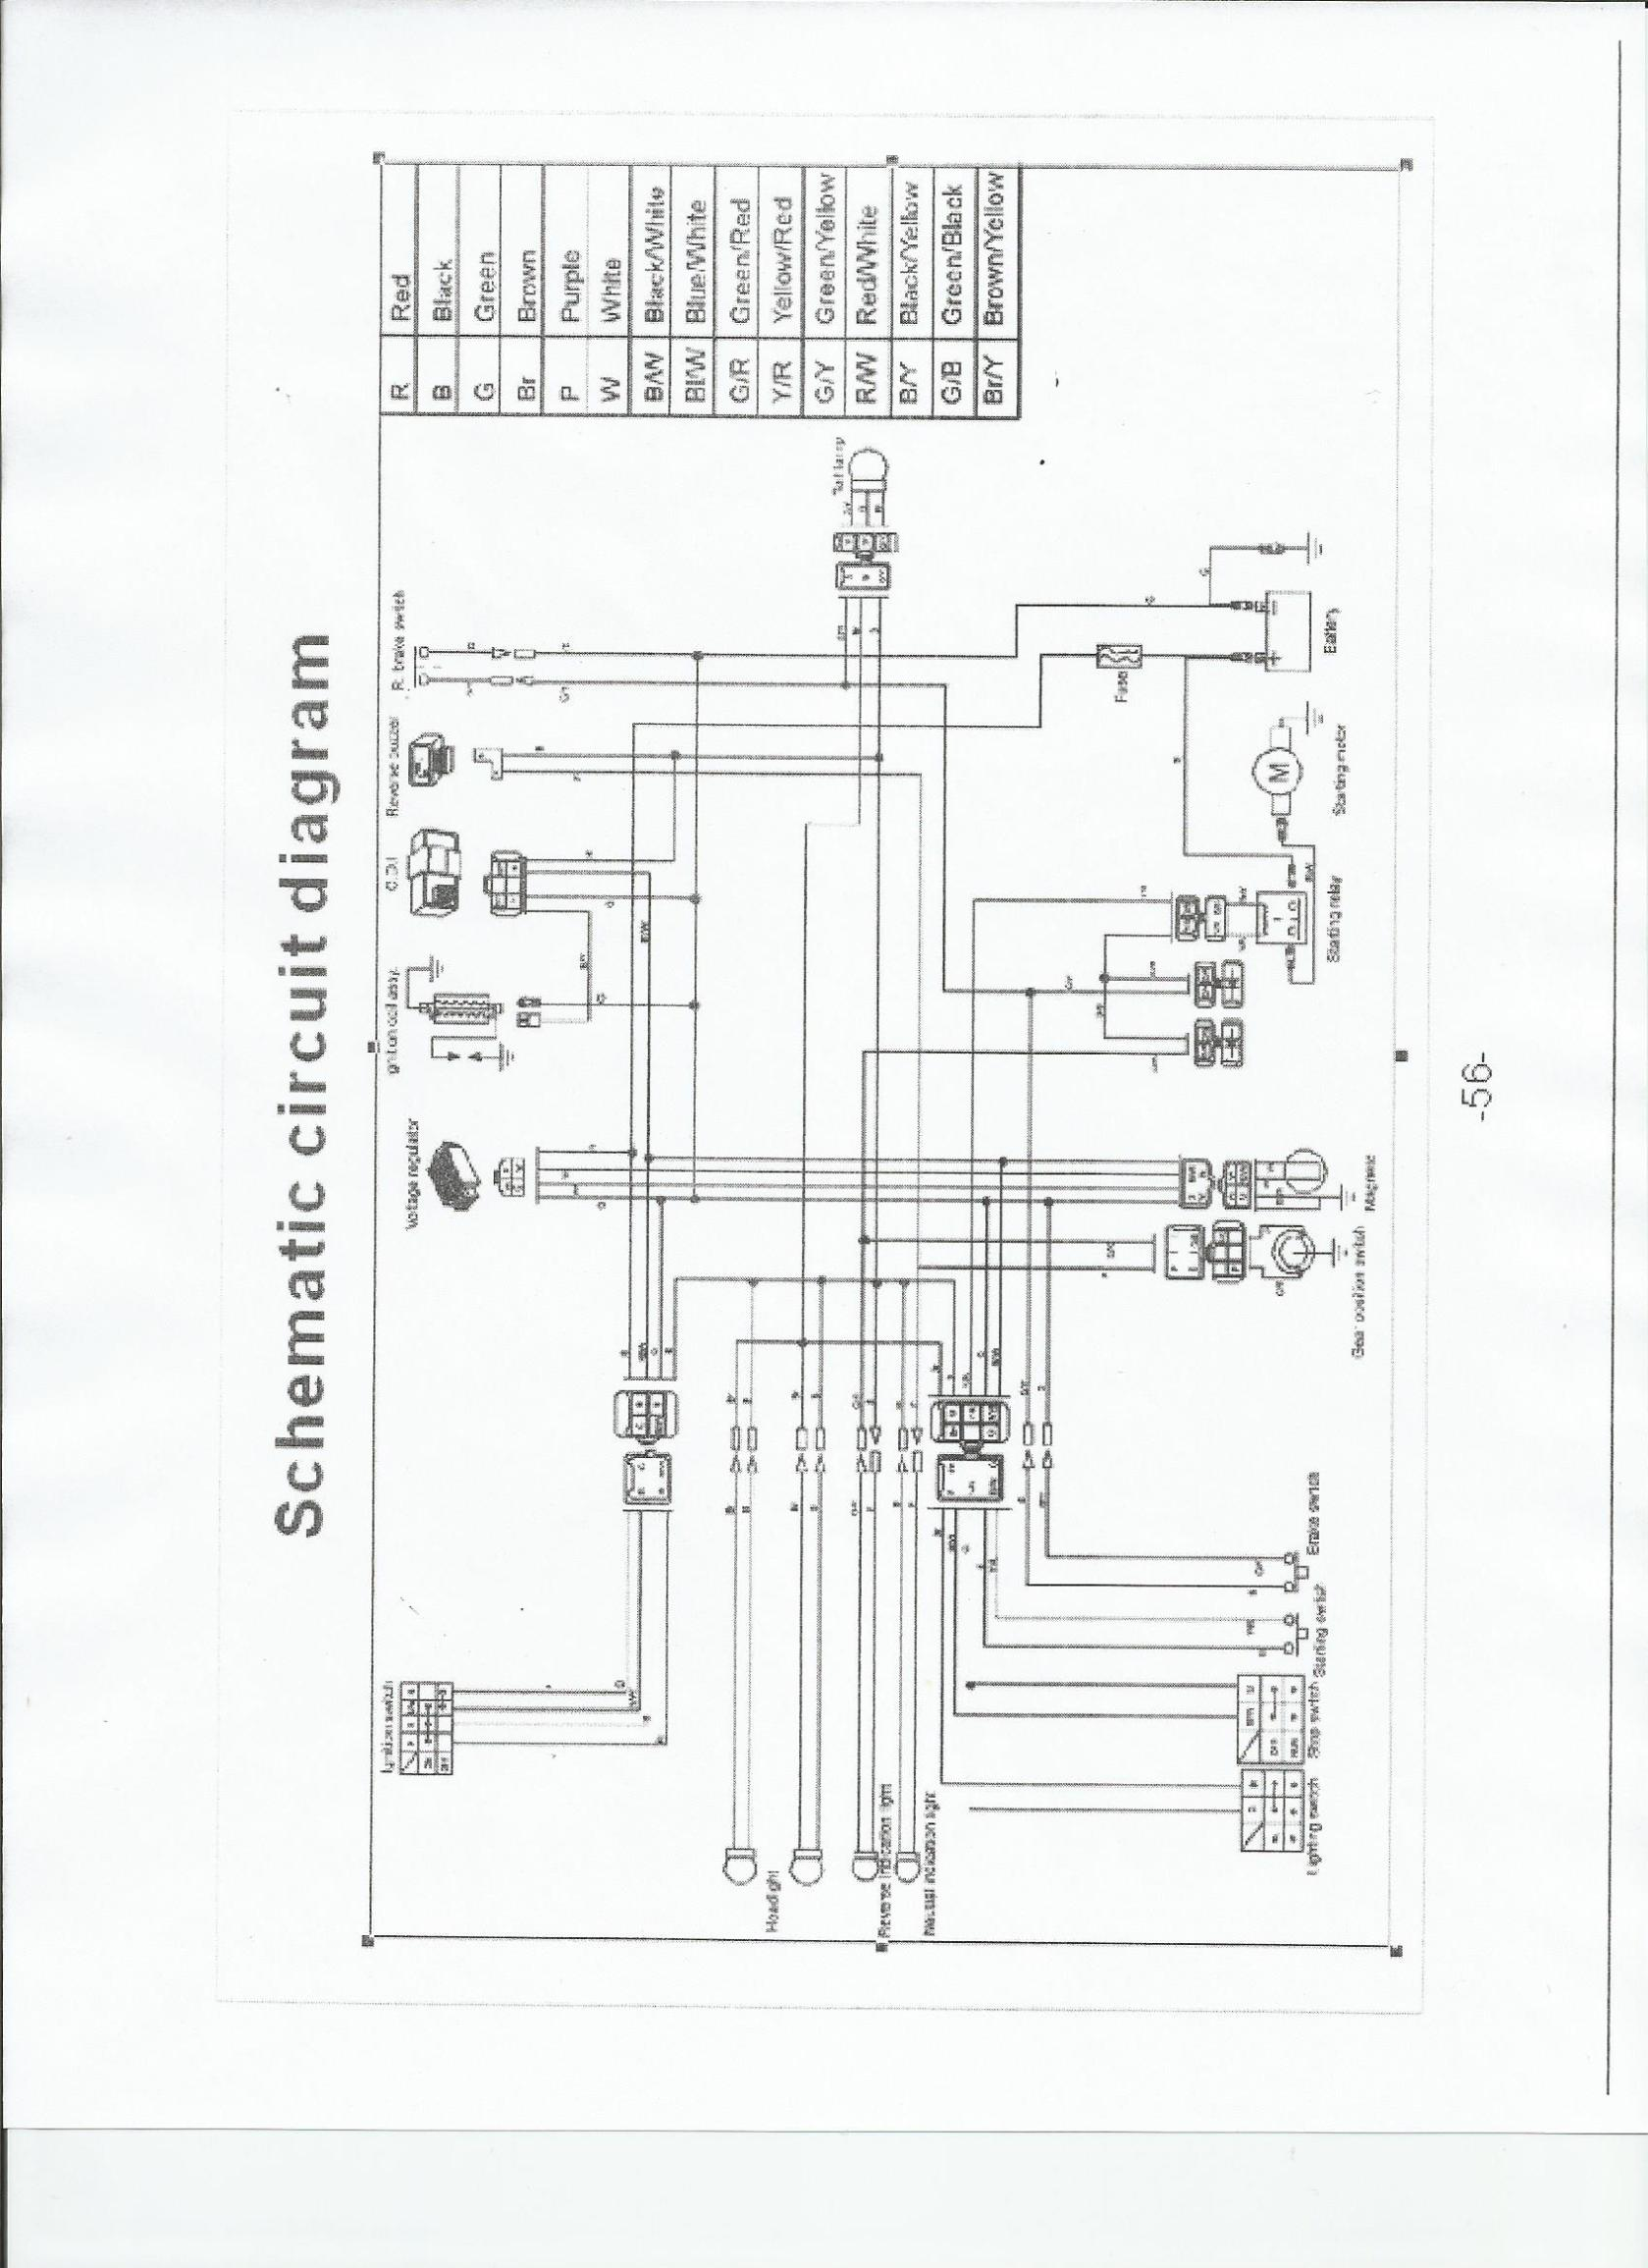 sunl 4 wheeler wiring diagram sunl 90cc atv wiring diagram wiring diagrams roketa 110cc atv wiring diagram wire